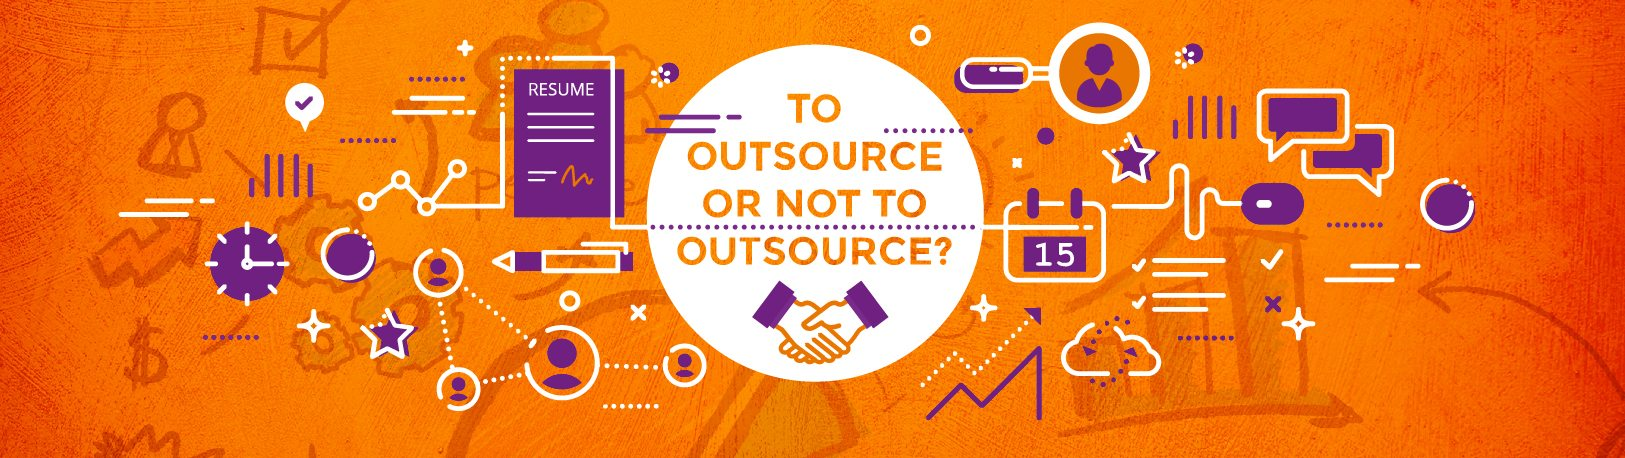 Outsource to a digital marketing agency. How about Clever?